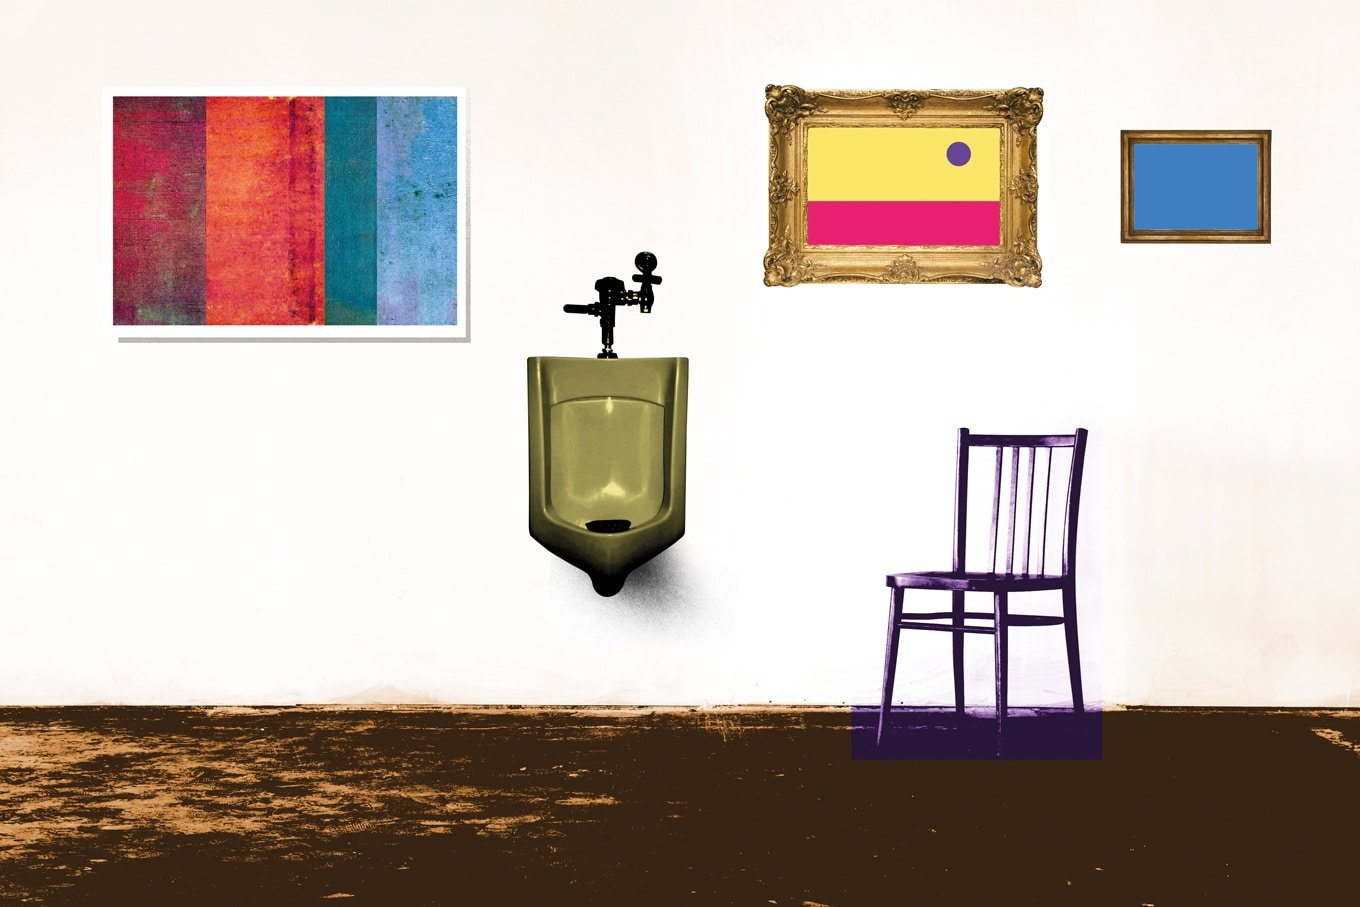 illustration of a museum with reused home objects like a chair